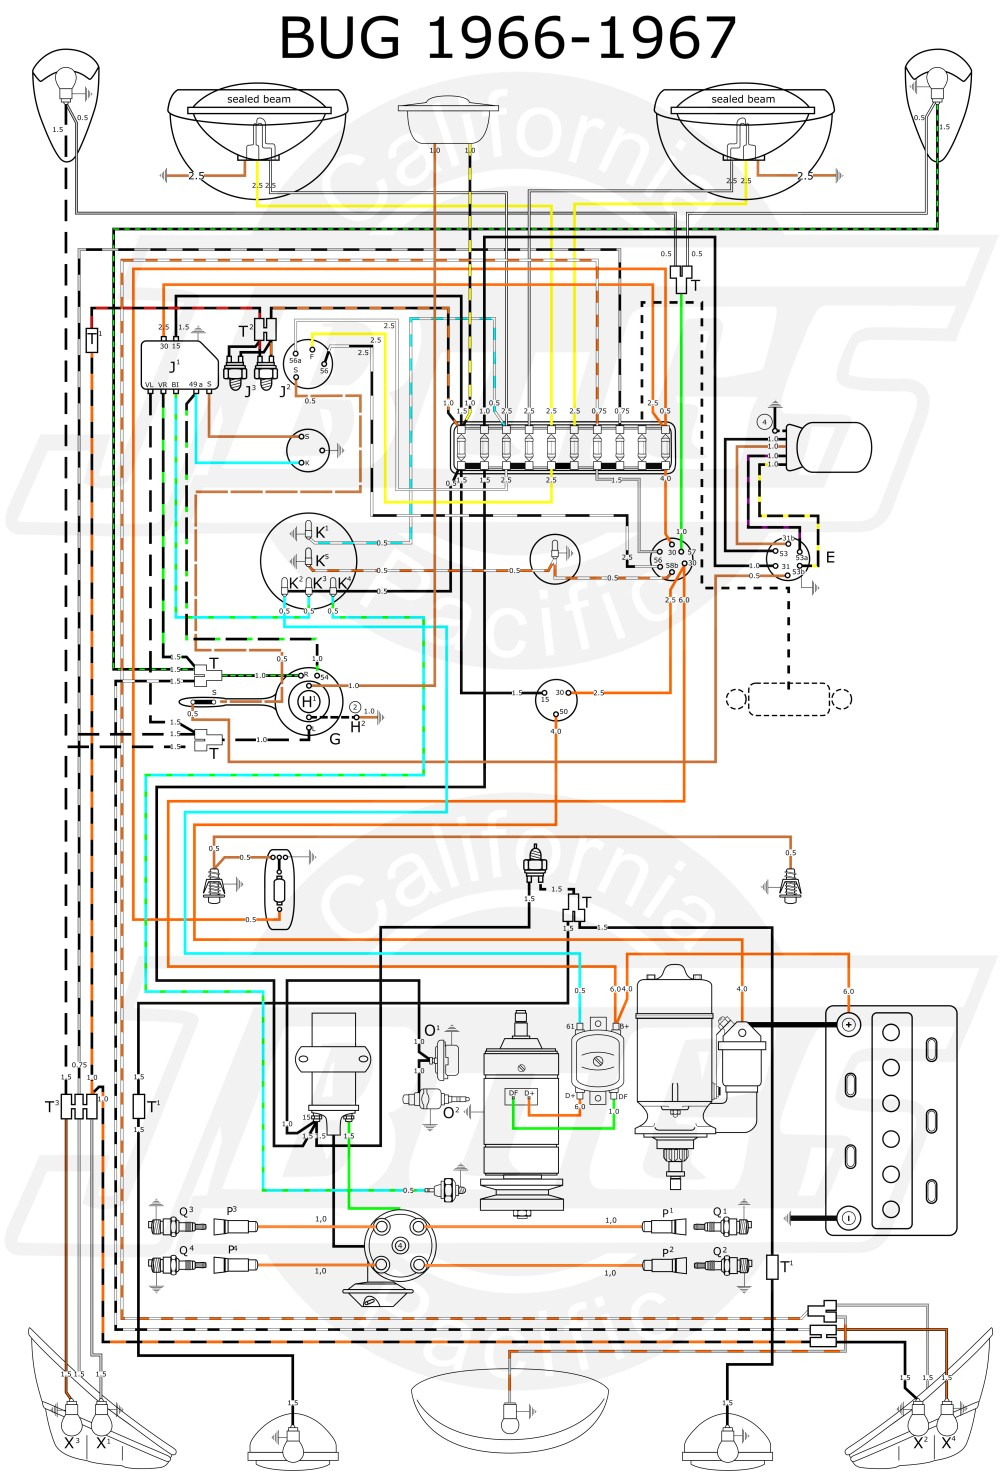 medium resolution of 66 vw wiring diagram my wiring diagramvw tech article 1966 67 wiring diagram 66 vw bus